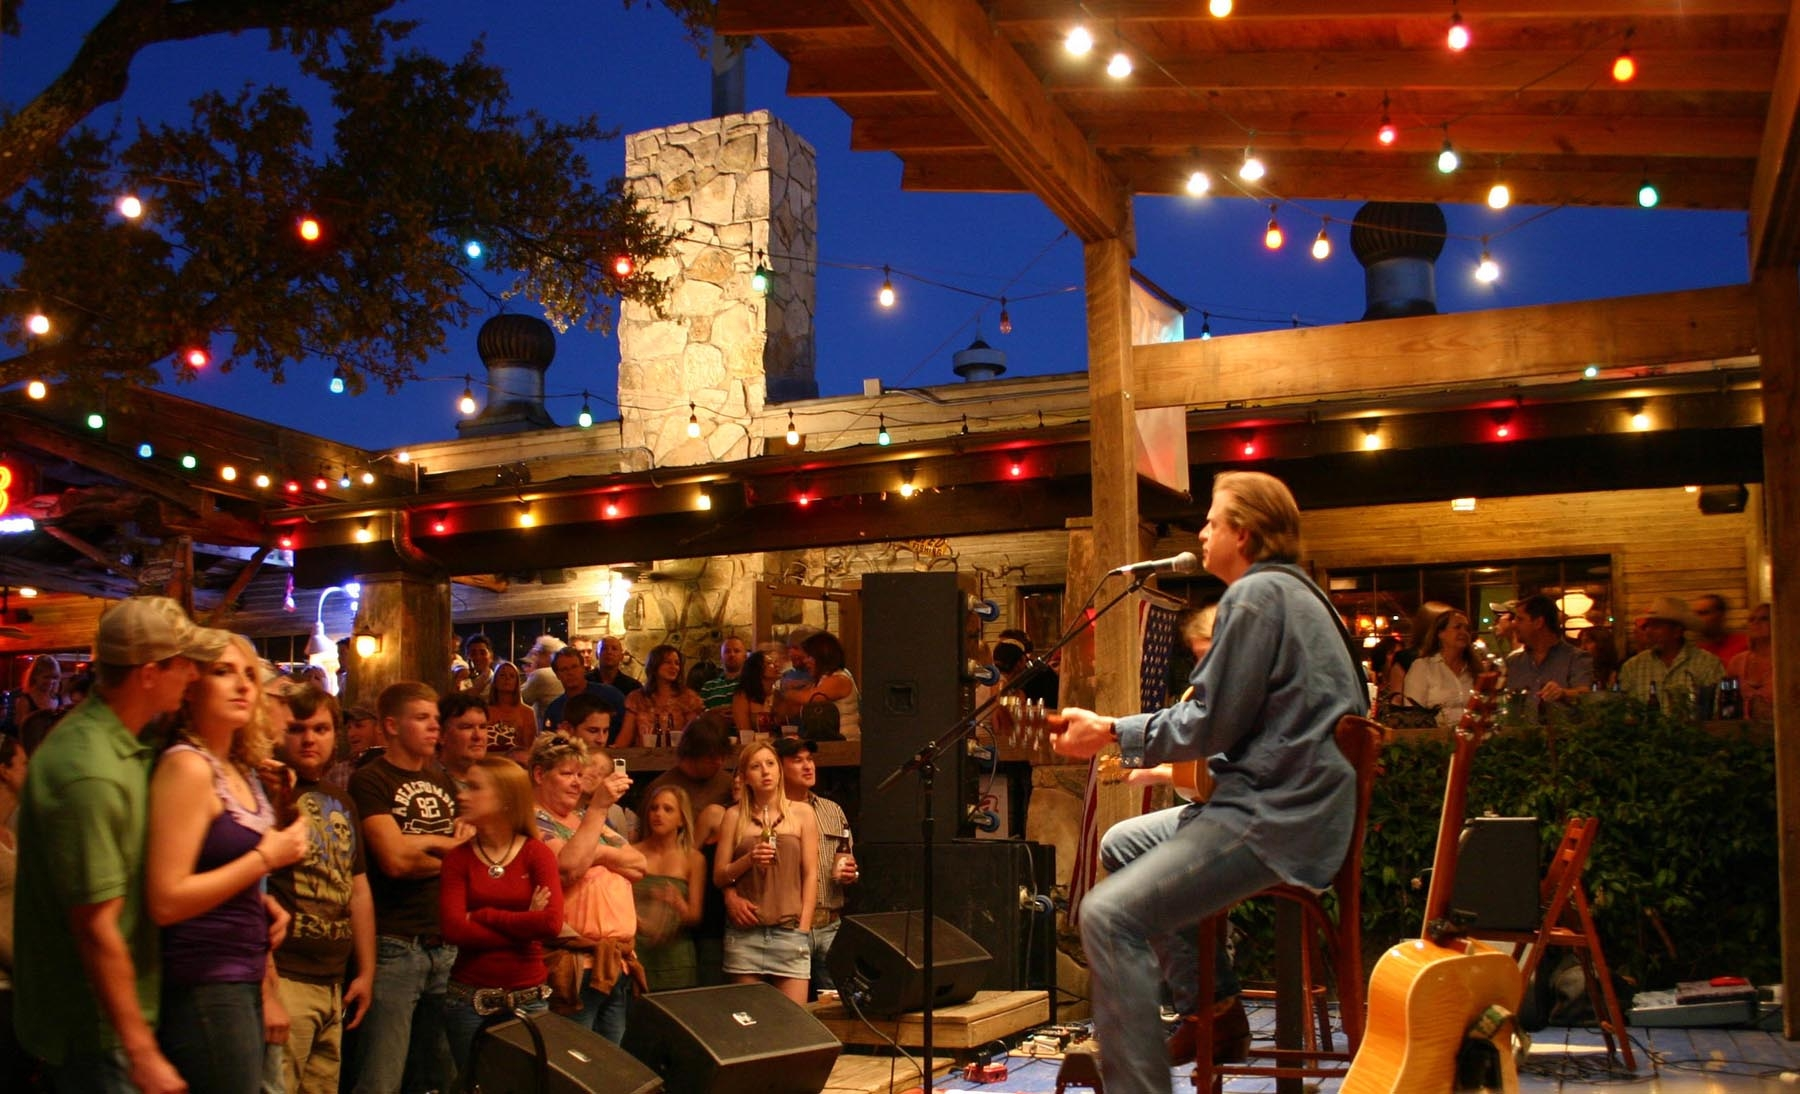 The County Line Bbq Restaurants Offer Country Music Series